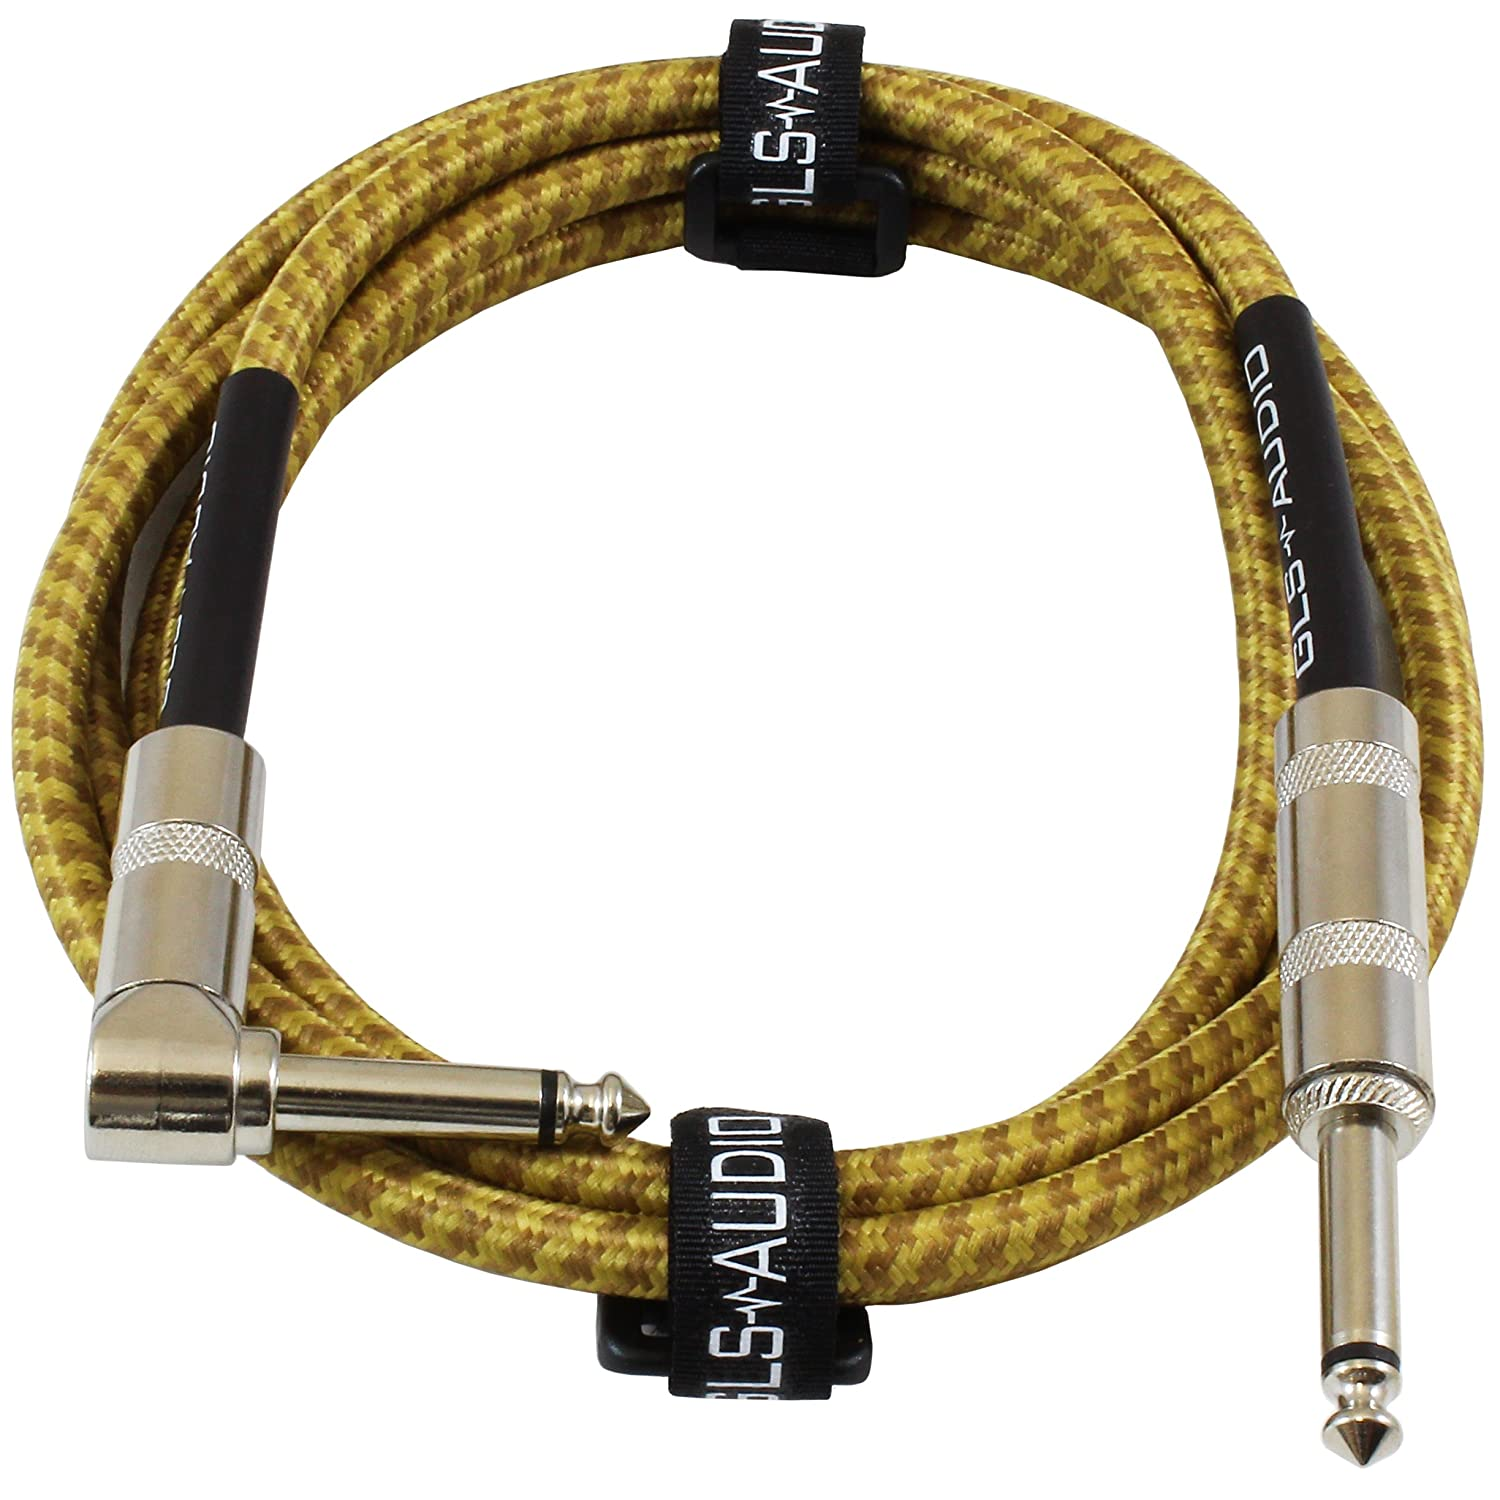 GLS Audio 6 Foot Guitar Instrument Cable - Right Angle 1/4-Inch TS to Straight 1/4-Inch TS 6 FT Brown Yellow Tweed Cloth Jacket - 6 Feet Pro Cord 6' Phono 6.3mm - SINGLE 37-467